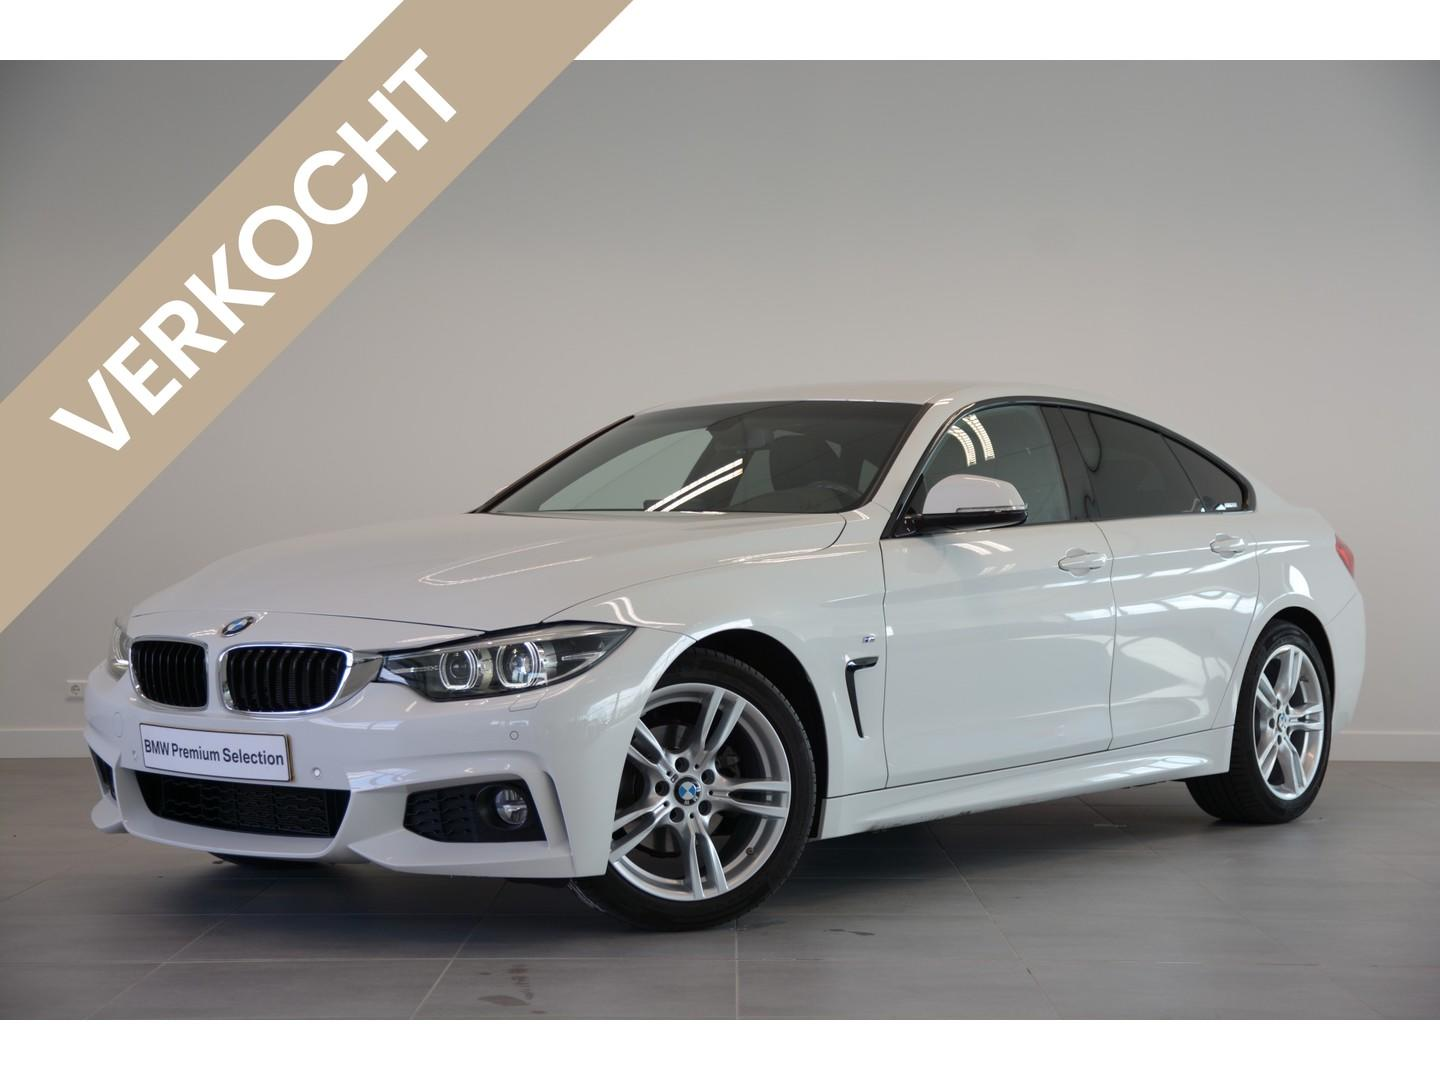 Bmw 4 serie Gran coupé 420i high executive m sportpakket aut.